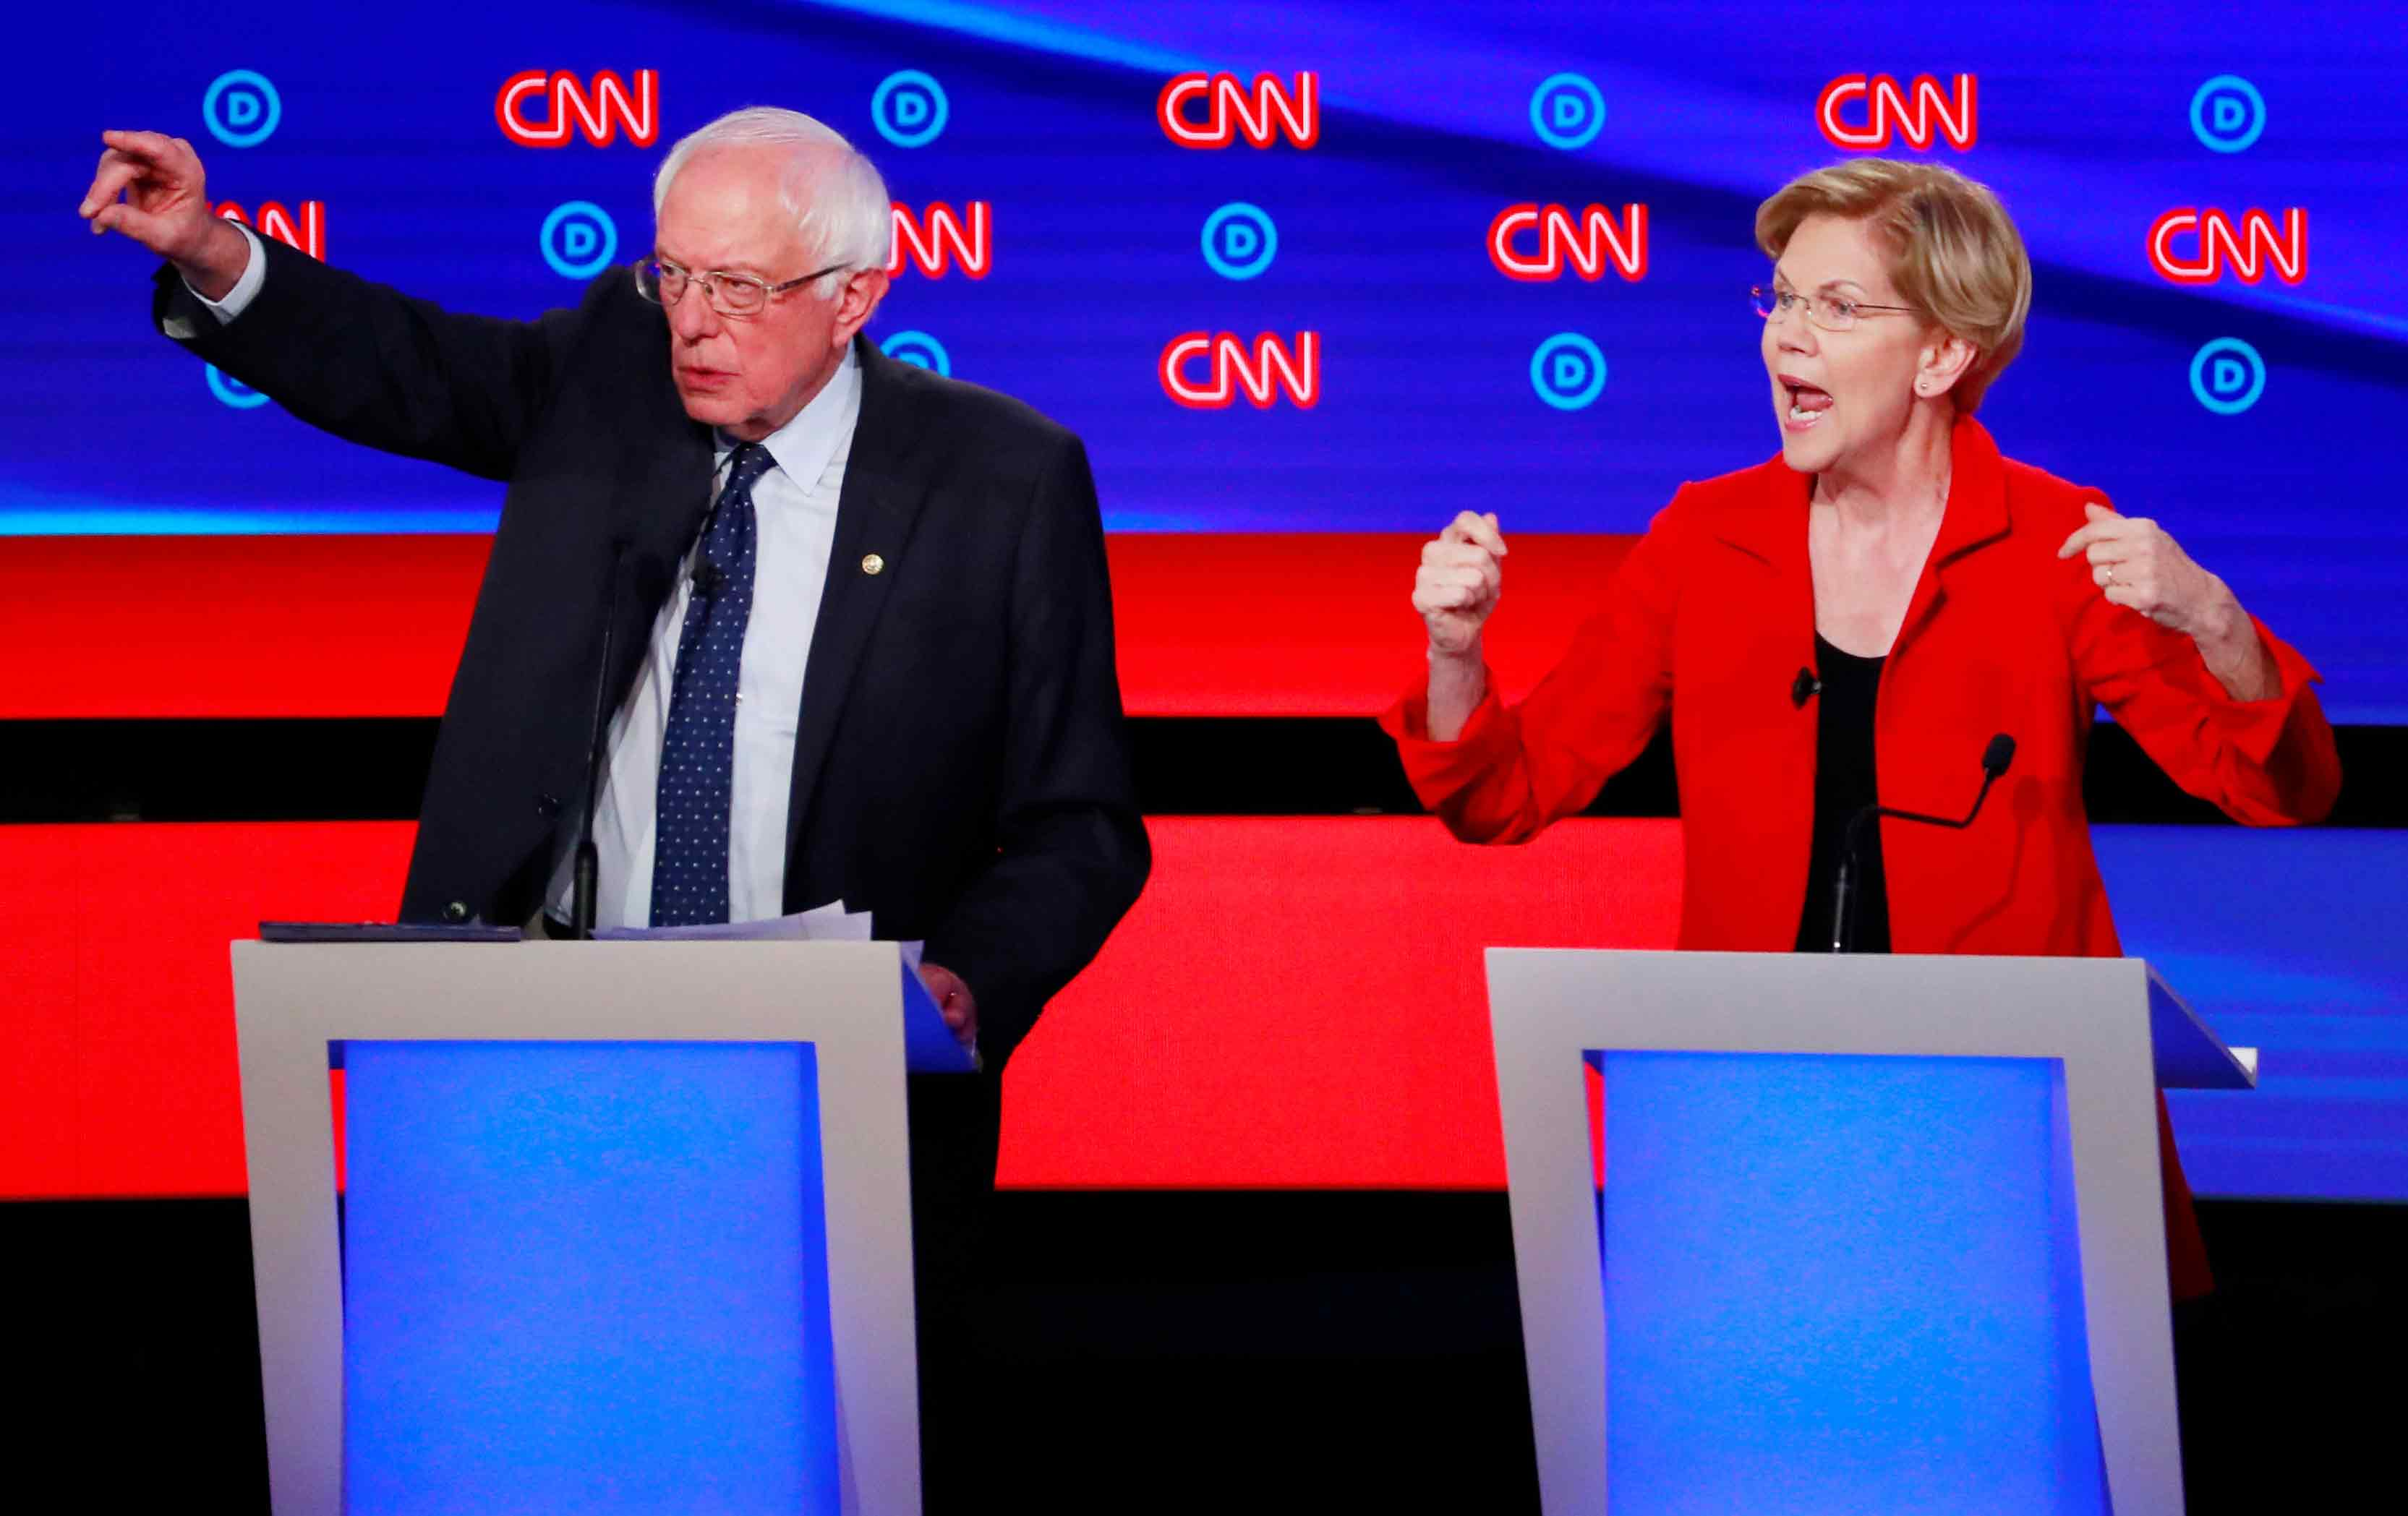 Senators Elizabeth Warren and Bernie Sanders